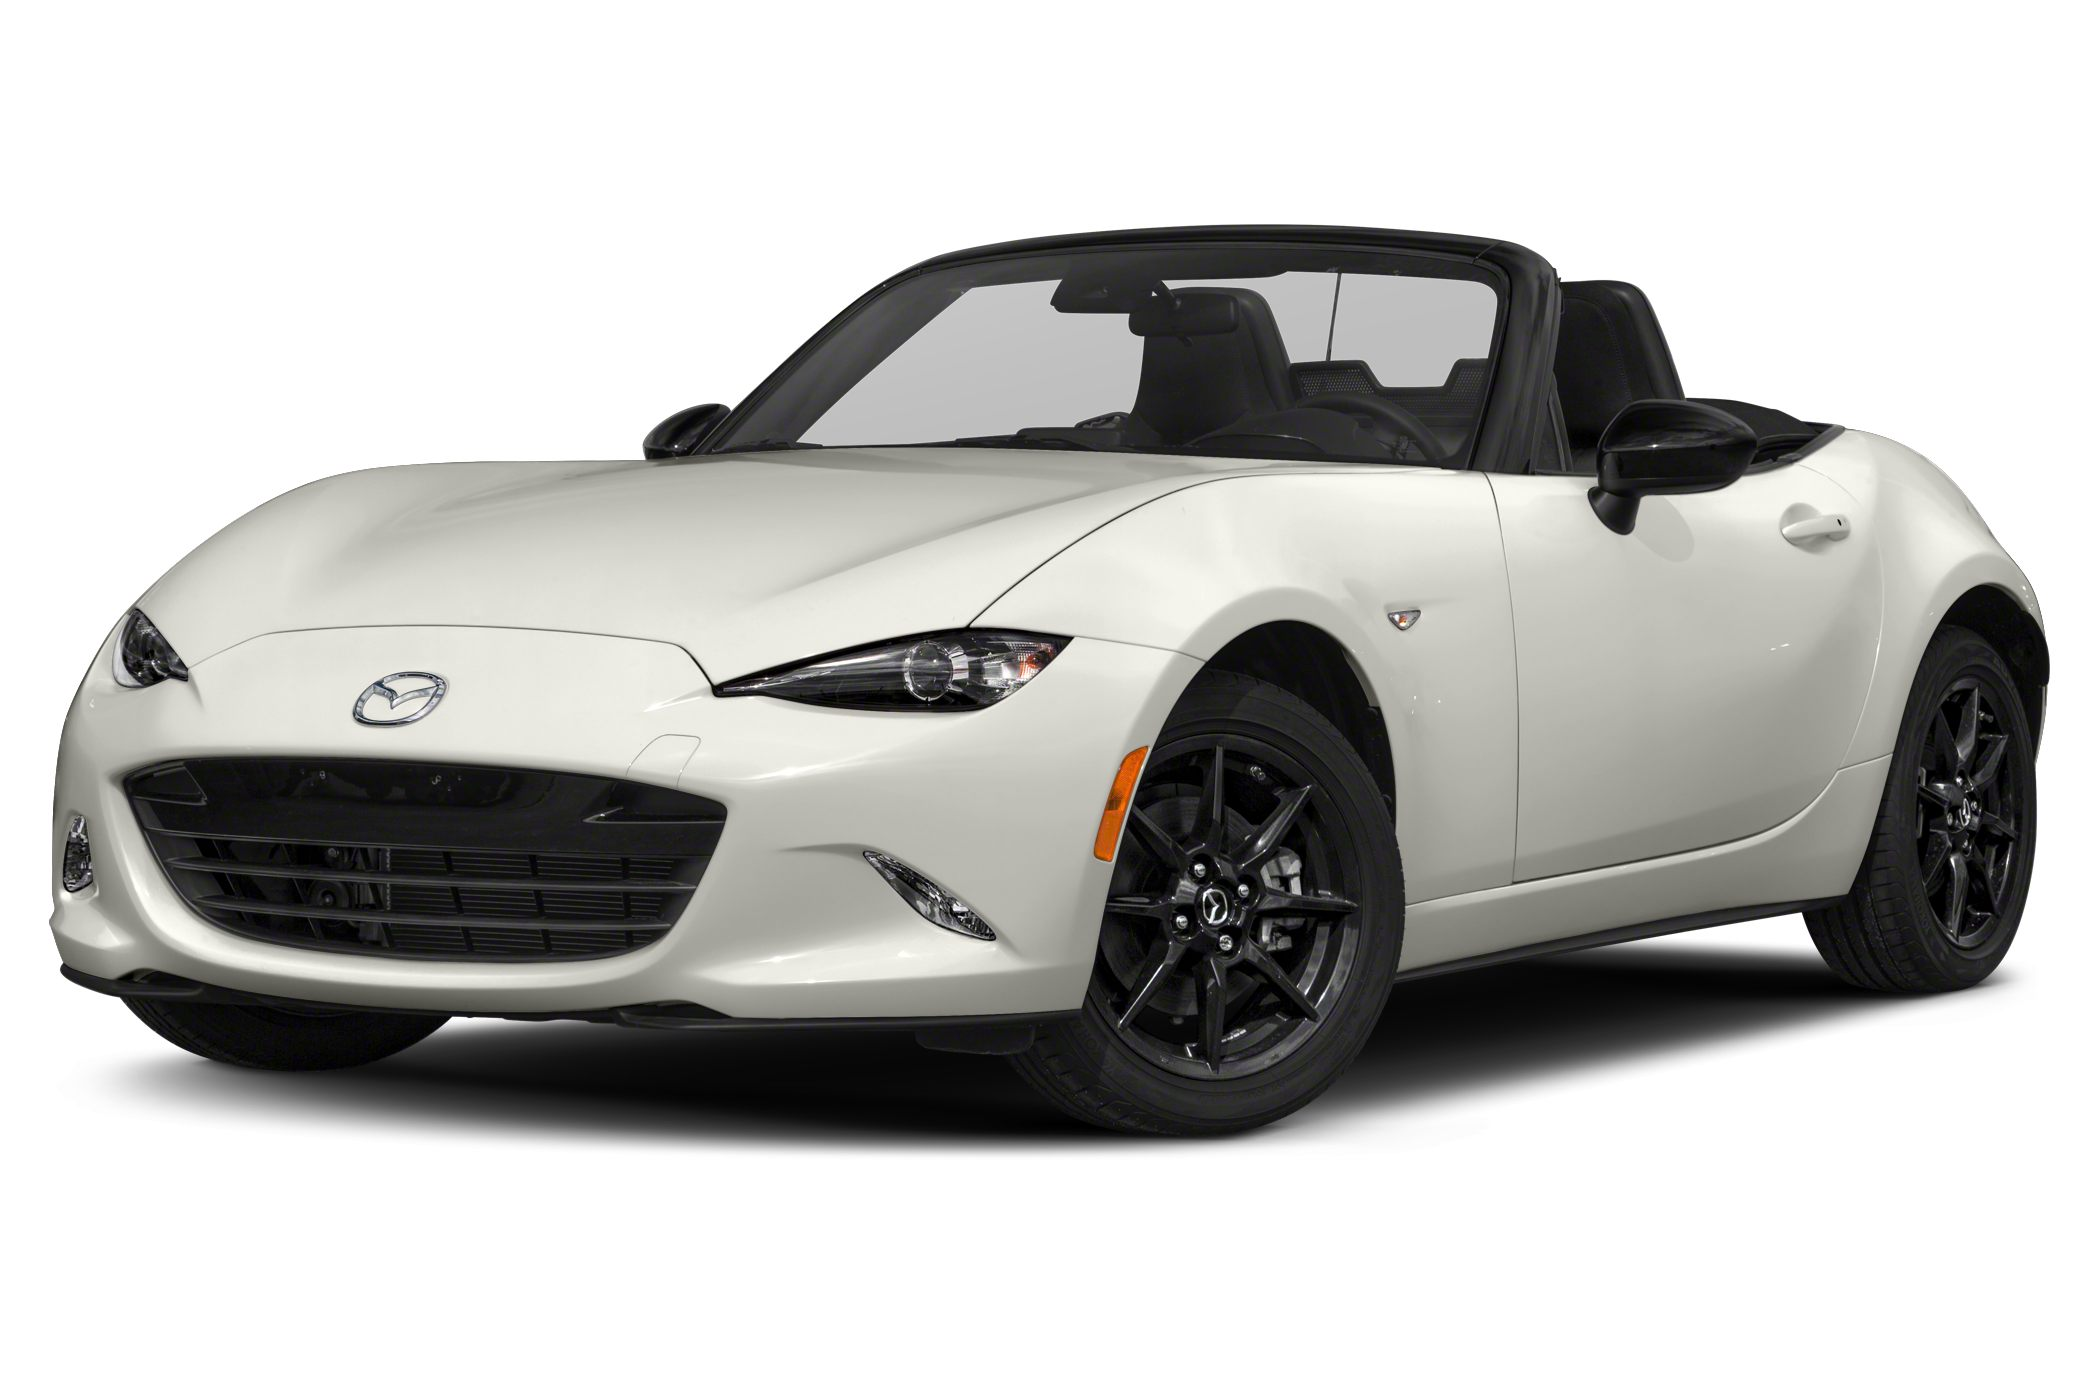 2016 Mazda MX-5 Miata in motion for the first time